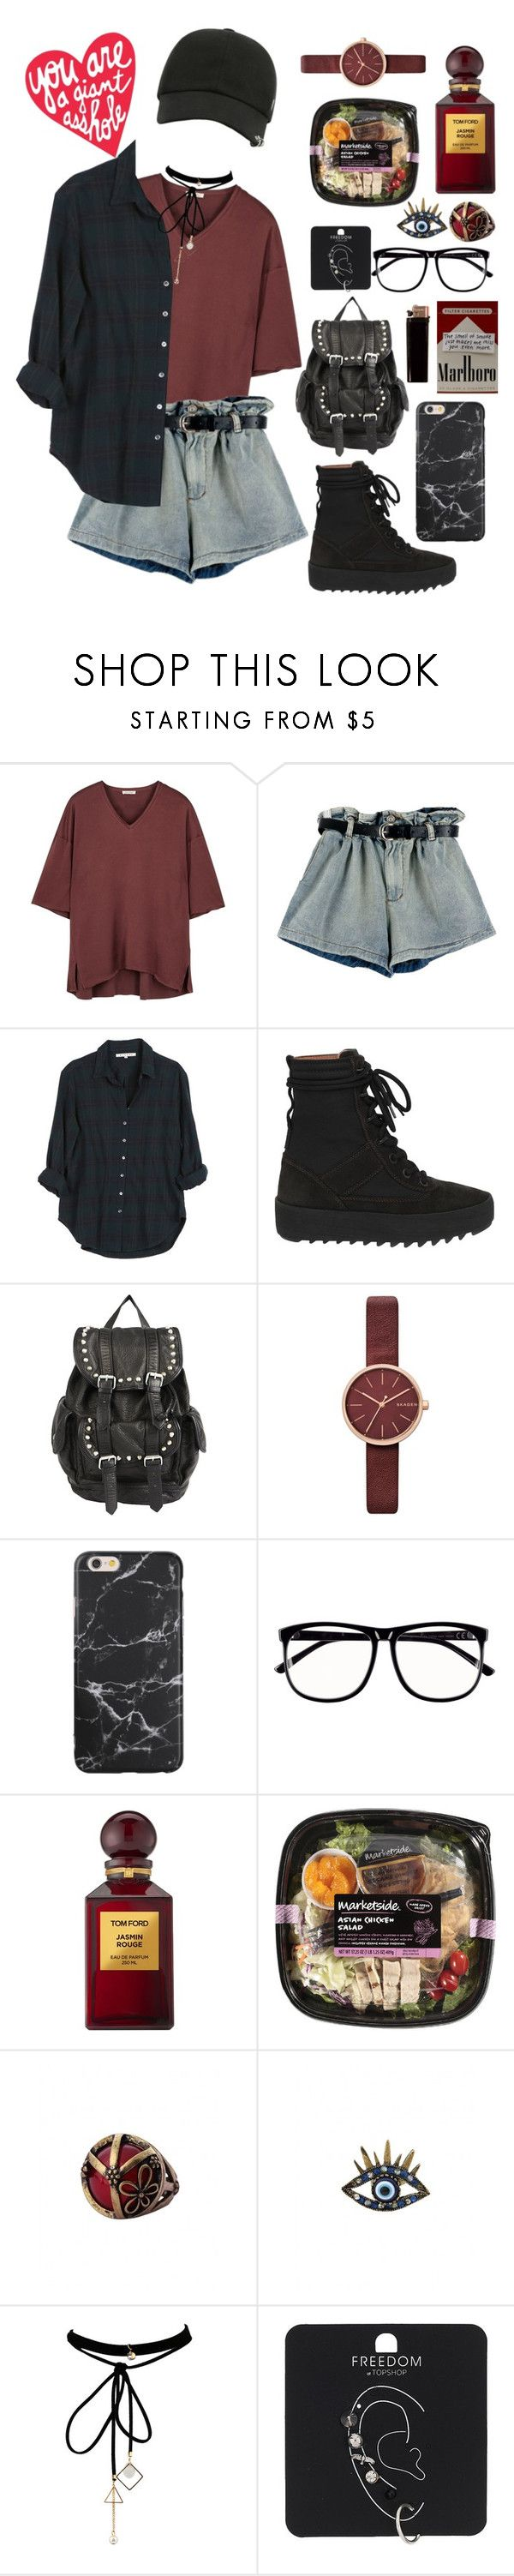 """""""#00063"""" by nglmfrryln ❤ liked on Polyvore featuring American Vintage, Xirena, Yeezy by Kanye West, Steve Madden, Skagen, H&M, Tom Ford, WithChic and Topshop"""